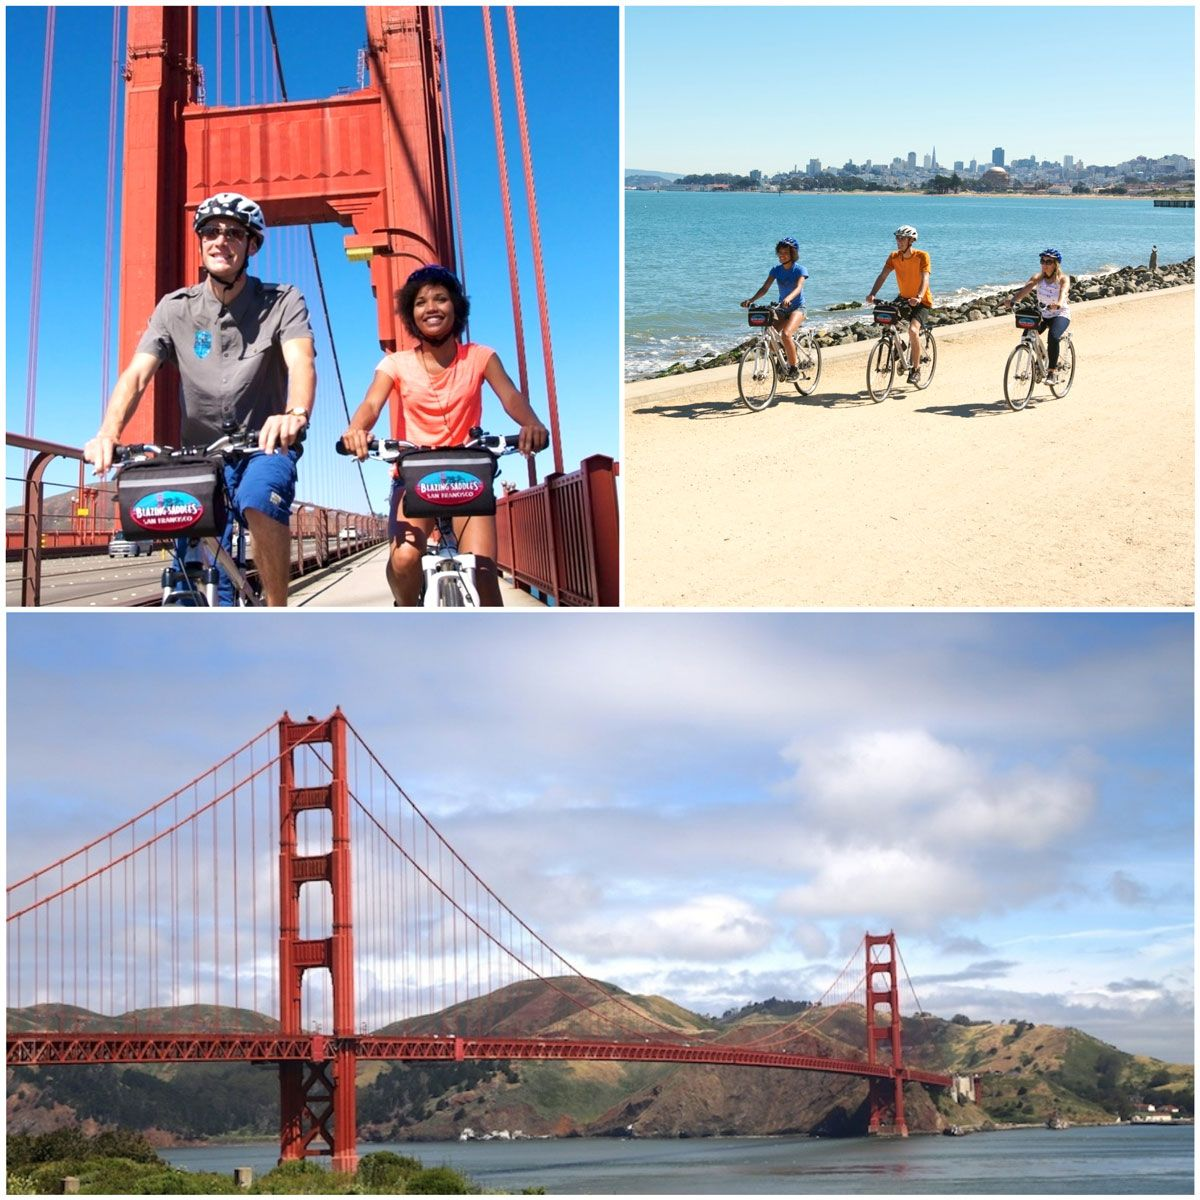 Bike Tour in San Francisco - dad and daughter riding on bike path on the Golden Gate Bridge, family riding on dirt path along the water